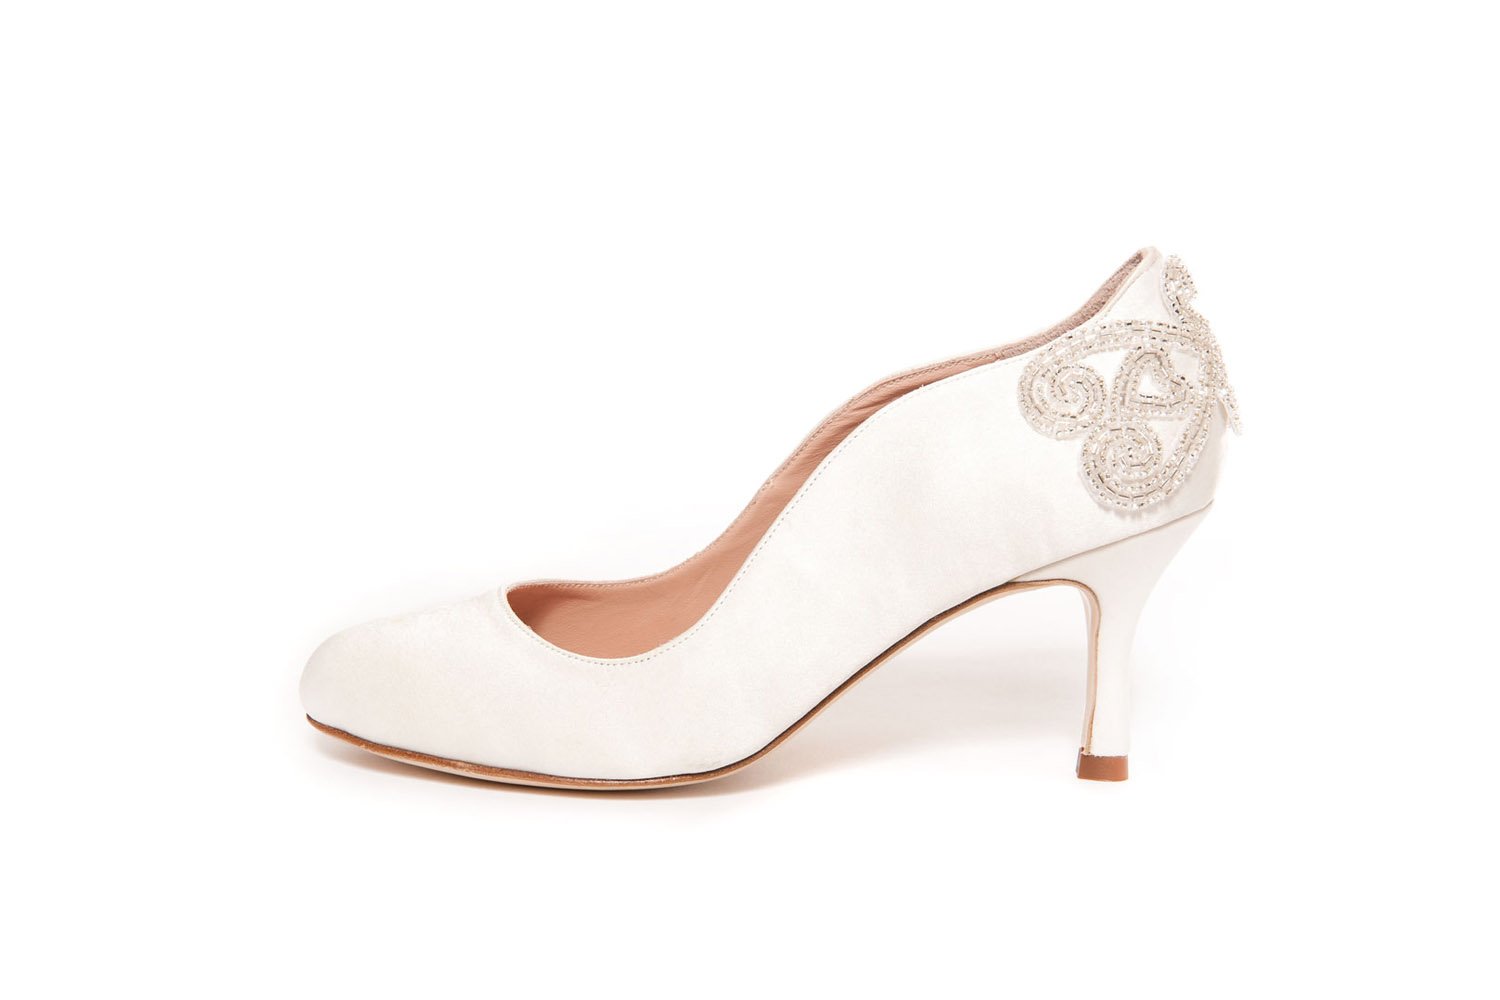 wide with bridal shoes photo - 1